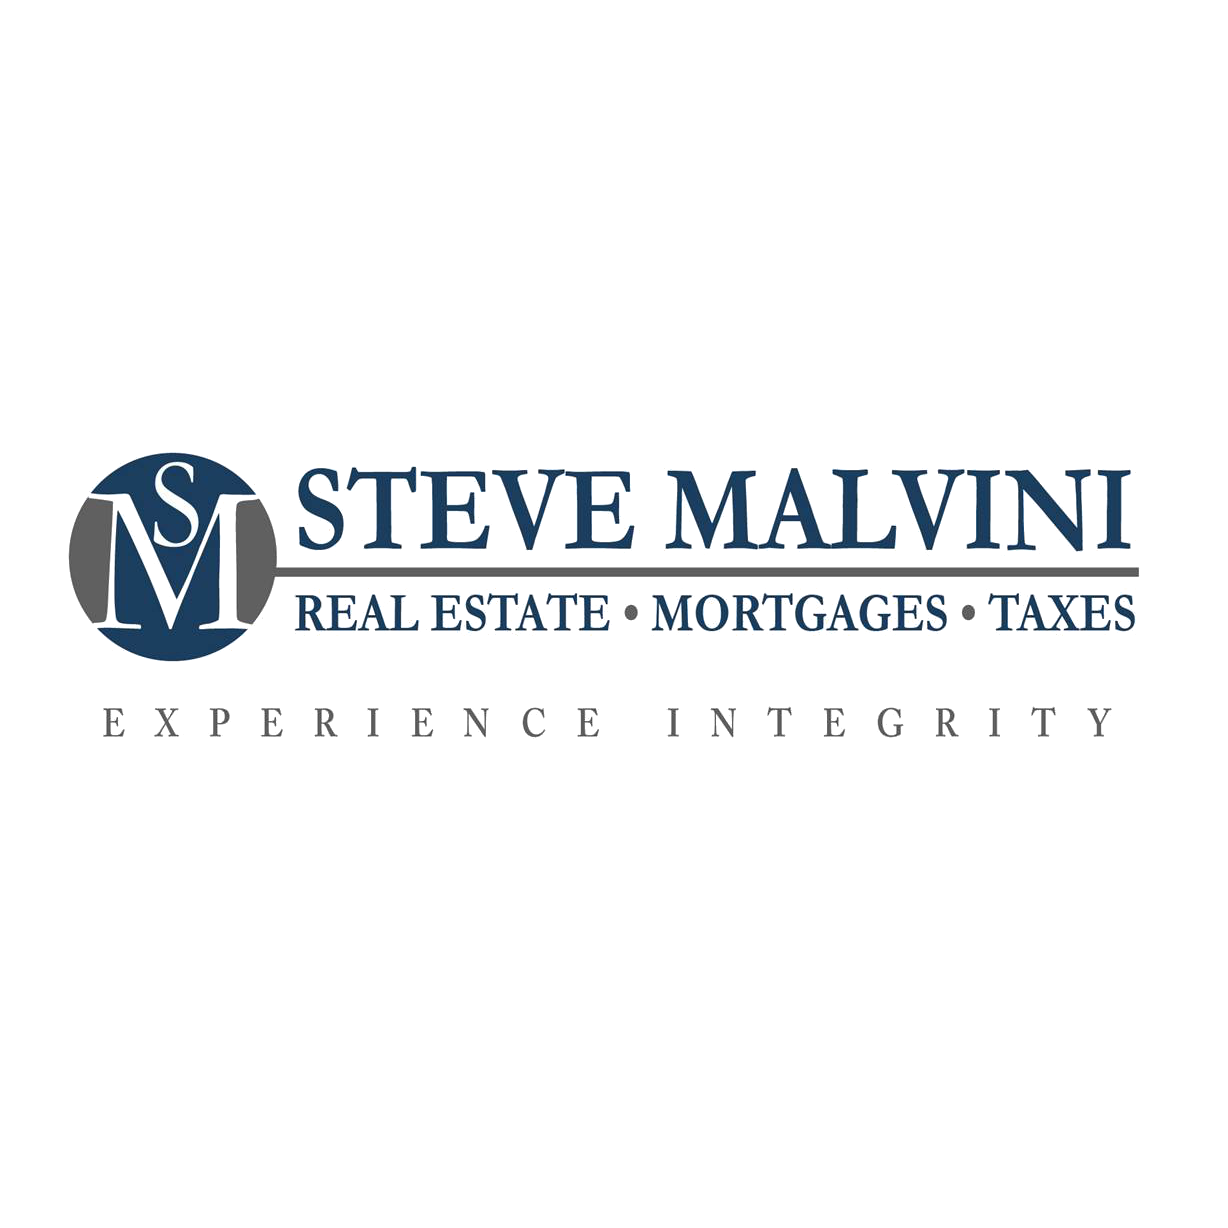 Malvini Mortgage & Real Estate